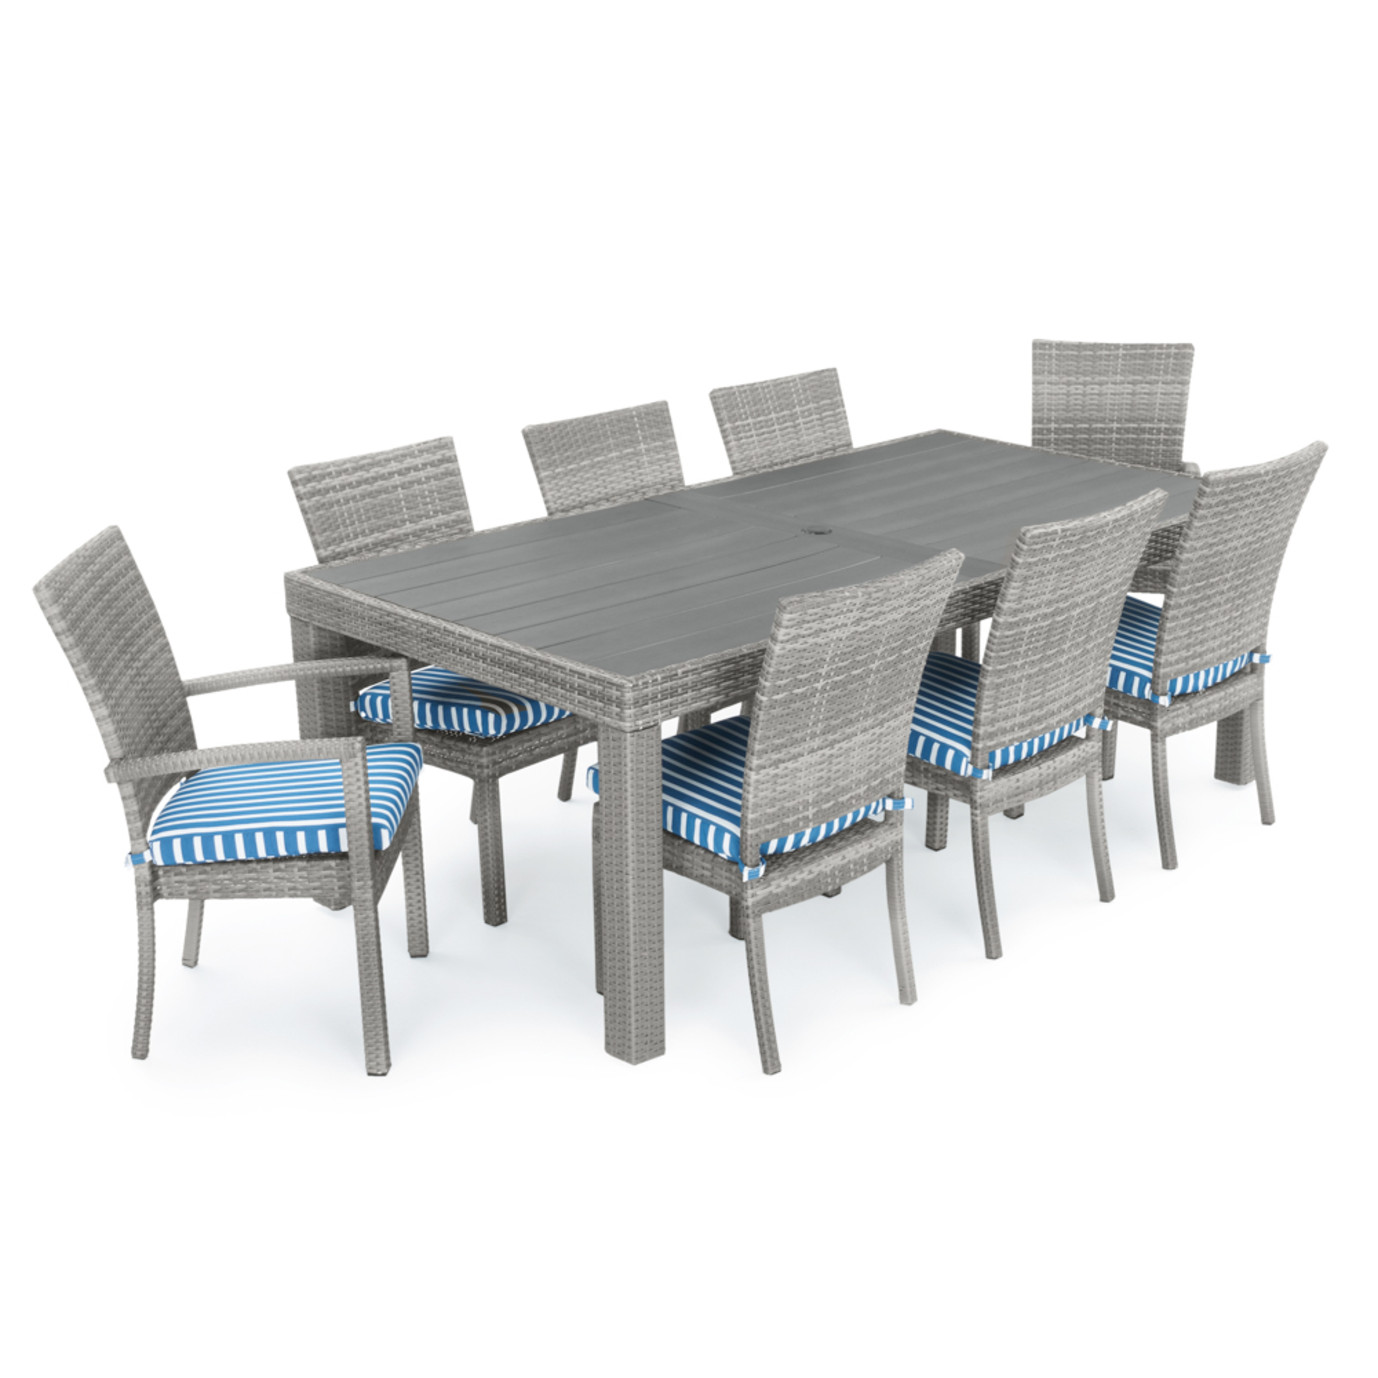 Cannes™ Woven Dining Set - Regatta Blue